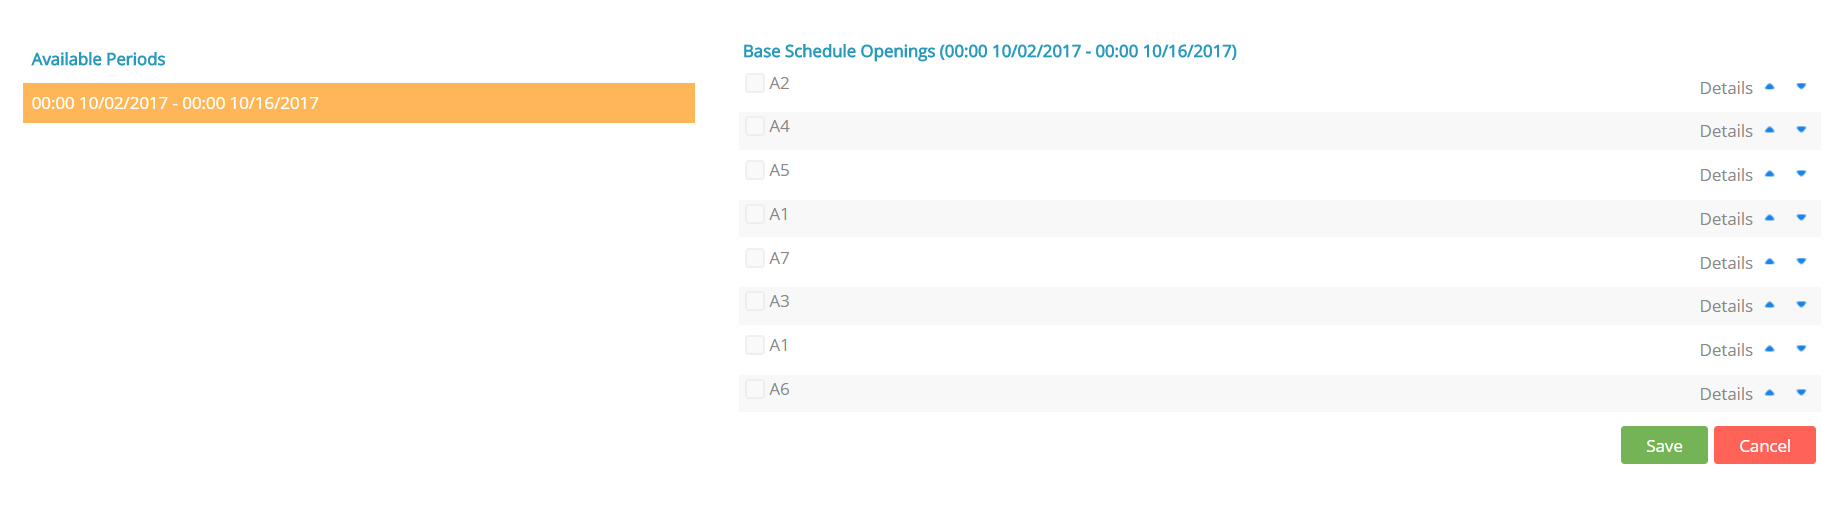 baseschedules.png